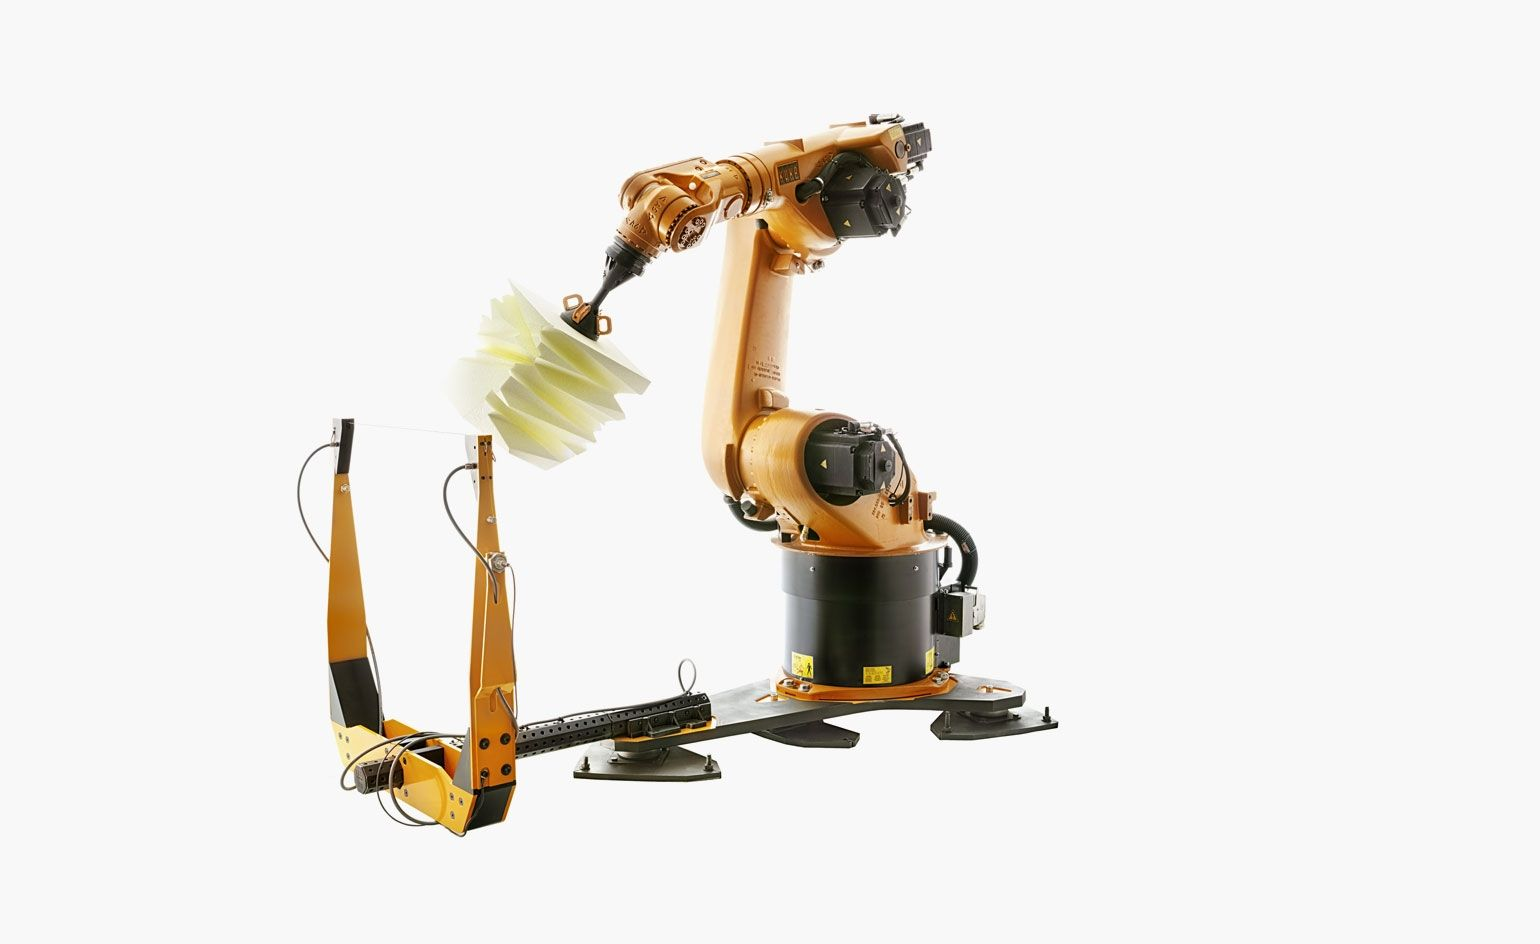 This Advanced Robotic Arm Will Carve Your Designs Out Of Foam